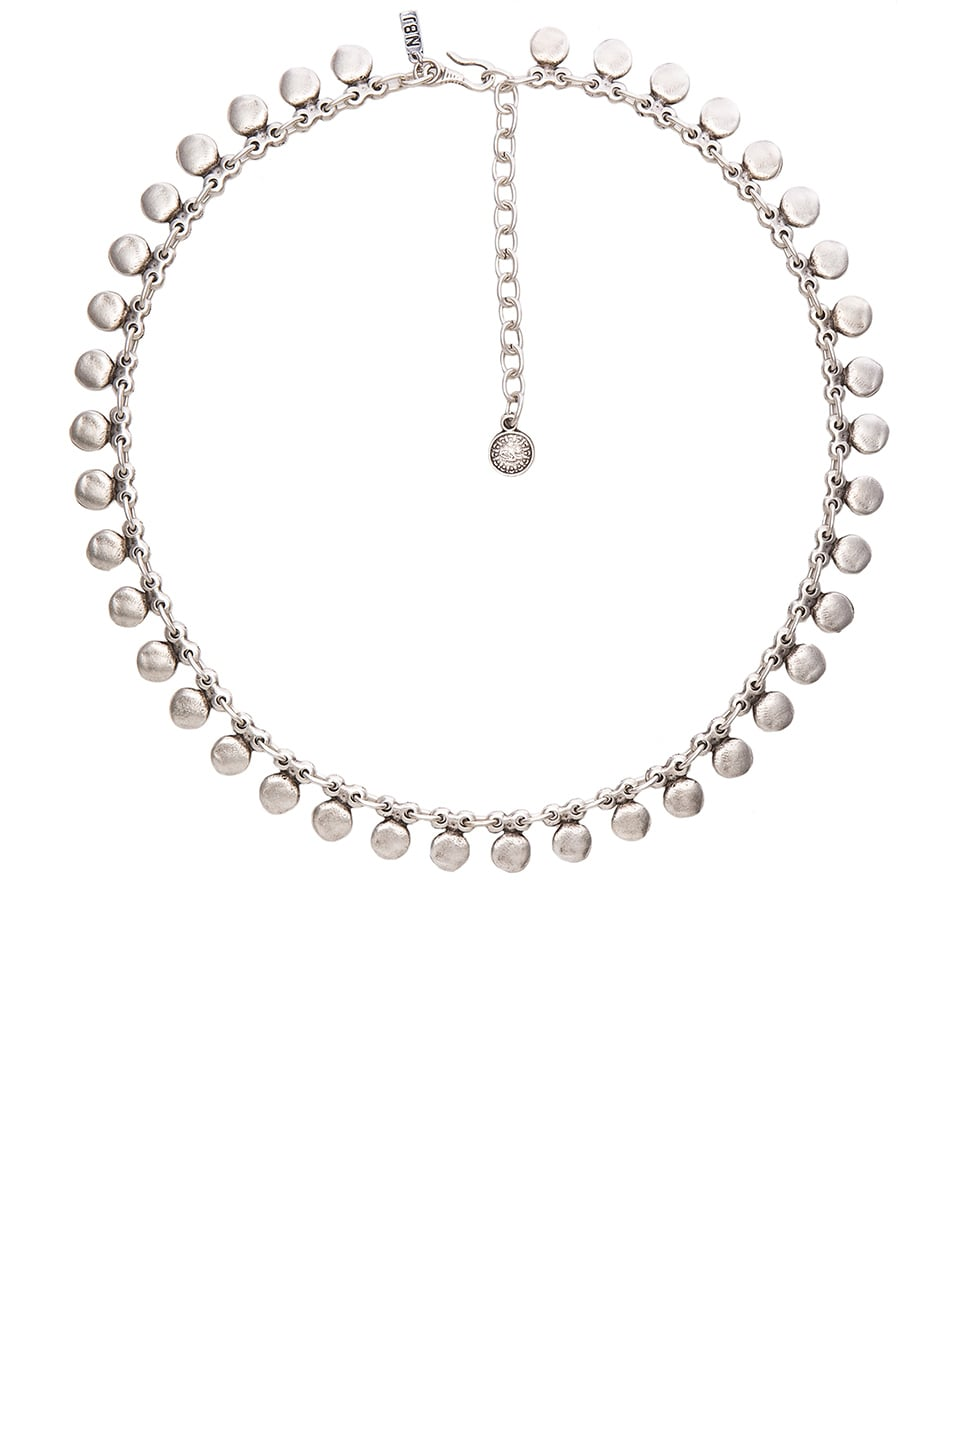 Natalie B Jewelry Sea Drops Necklace in Silver